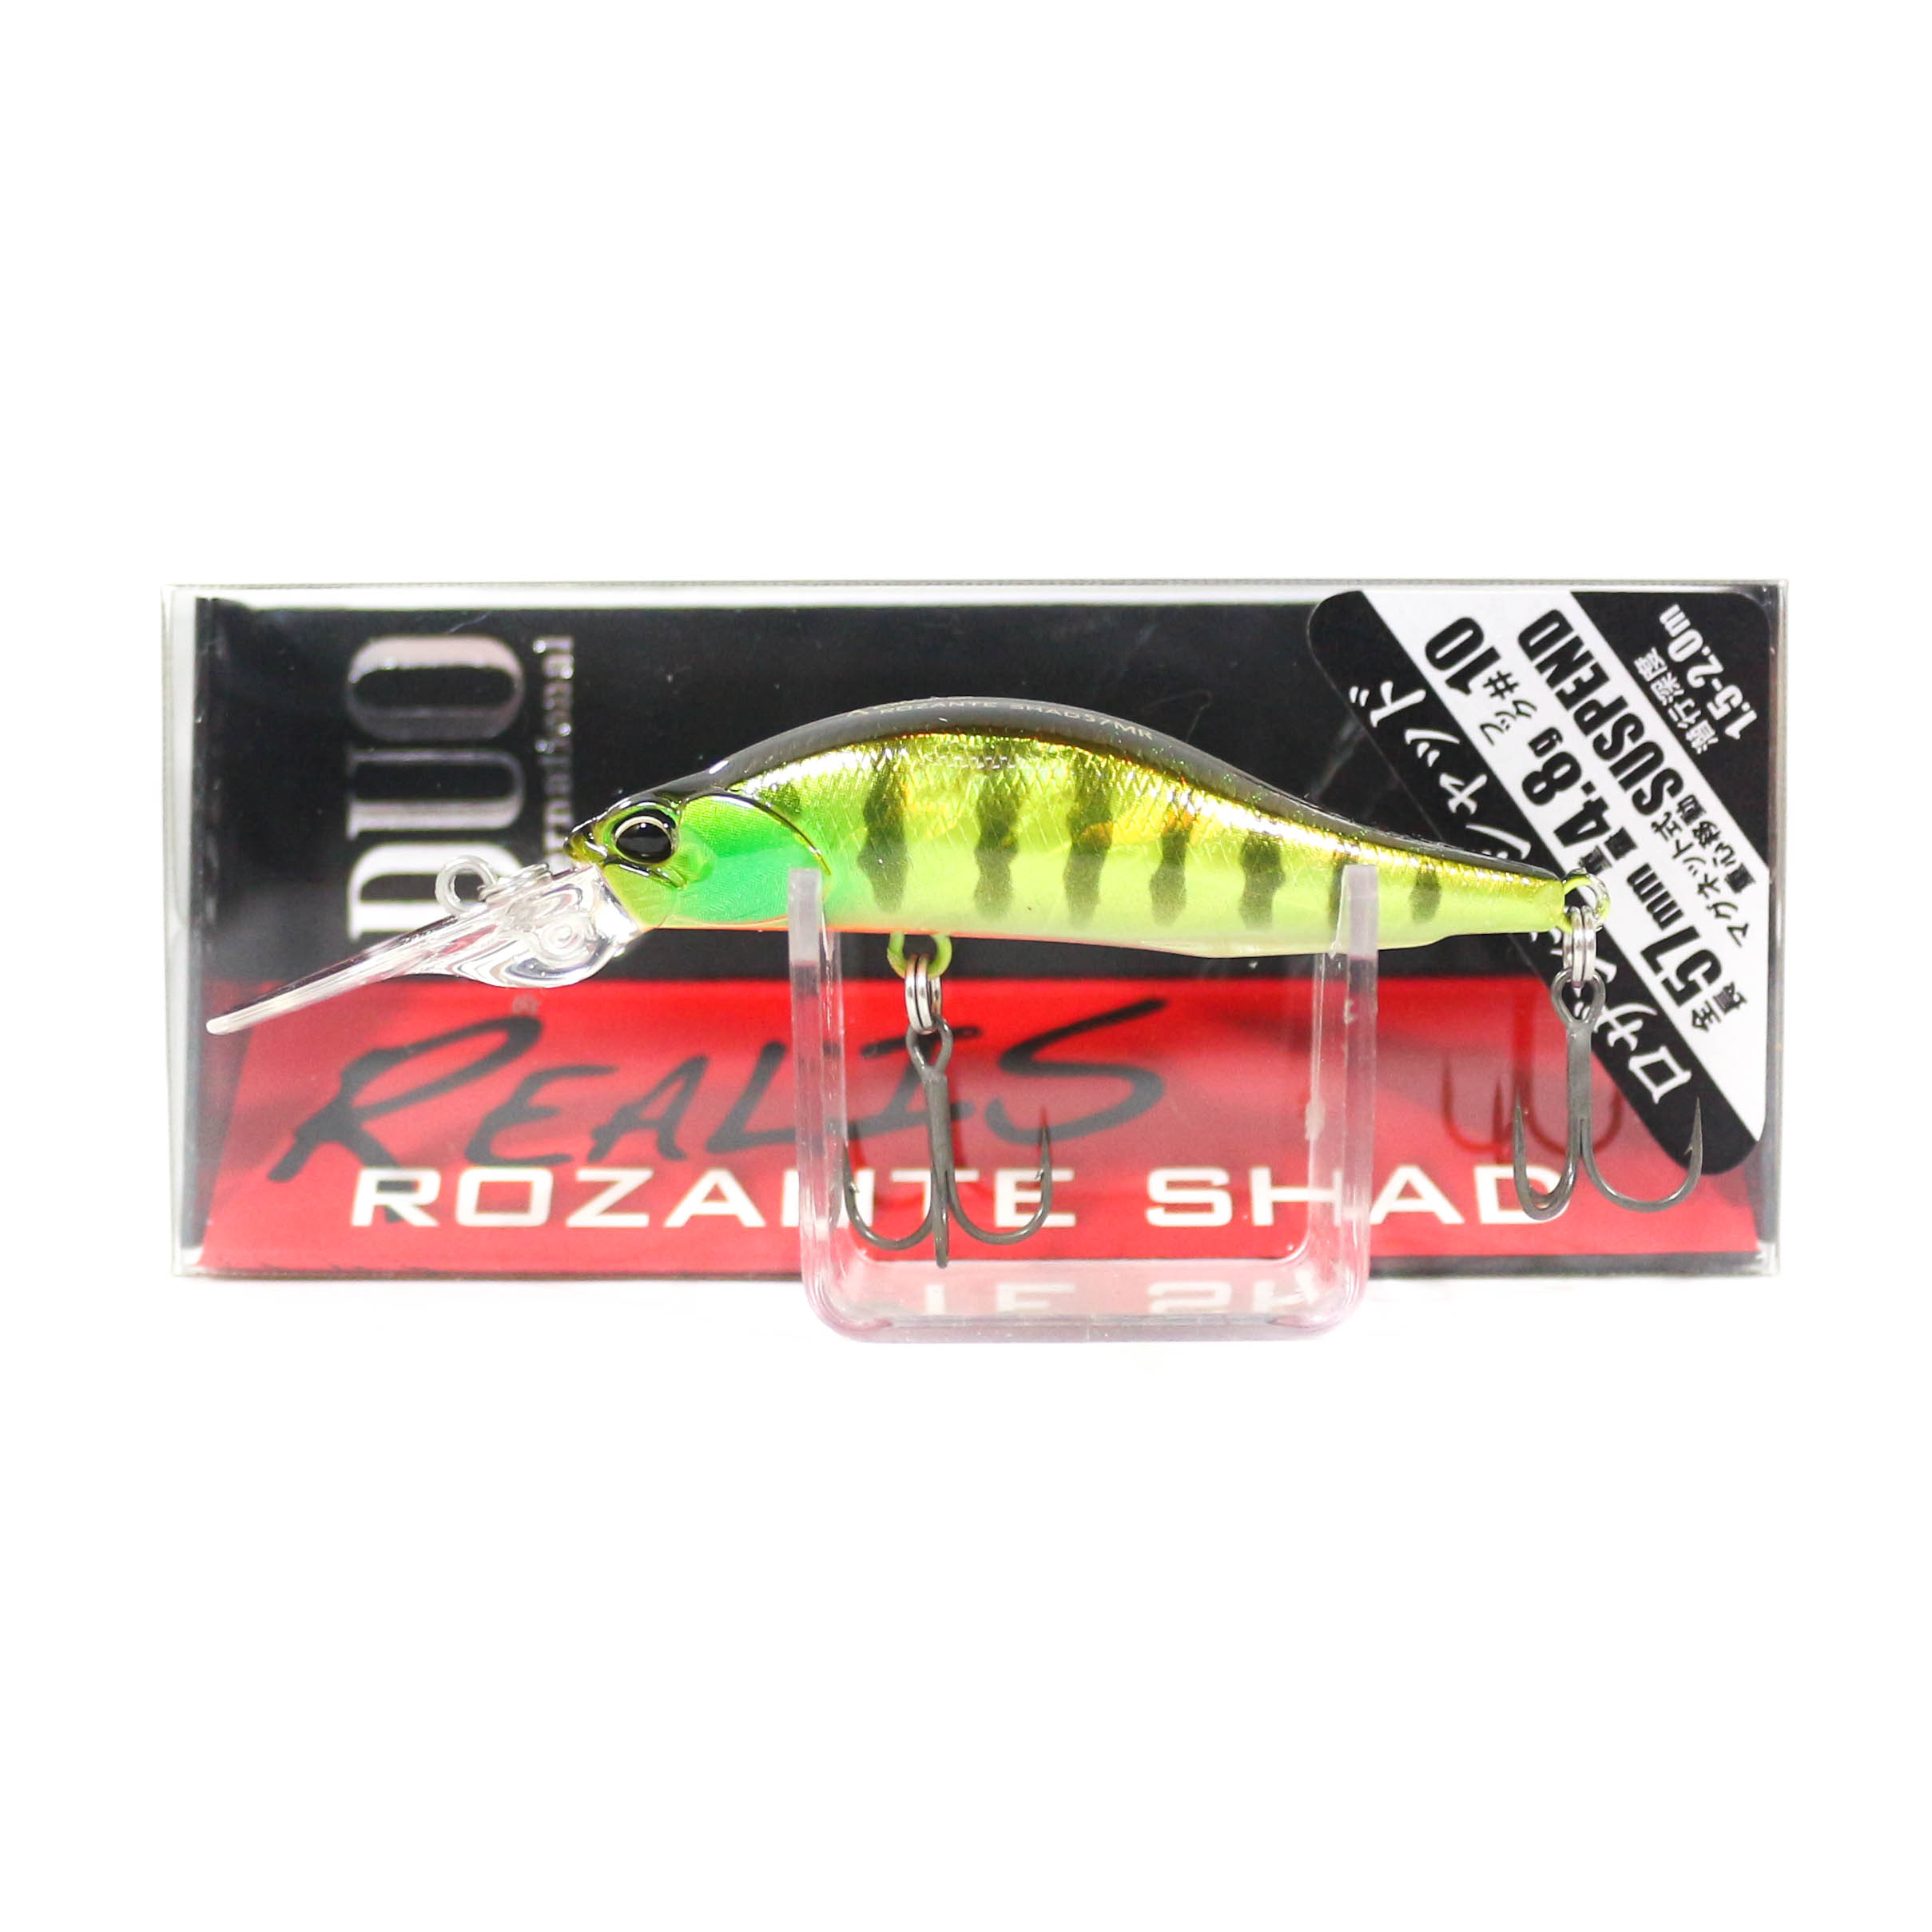 Duo Realis Rozante Shad 57 MR Suspend Lure AJA3055 (9225)